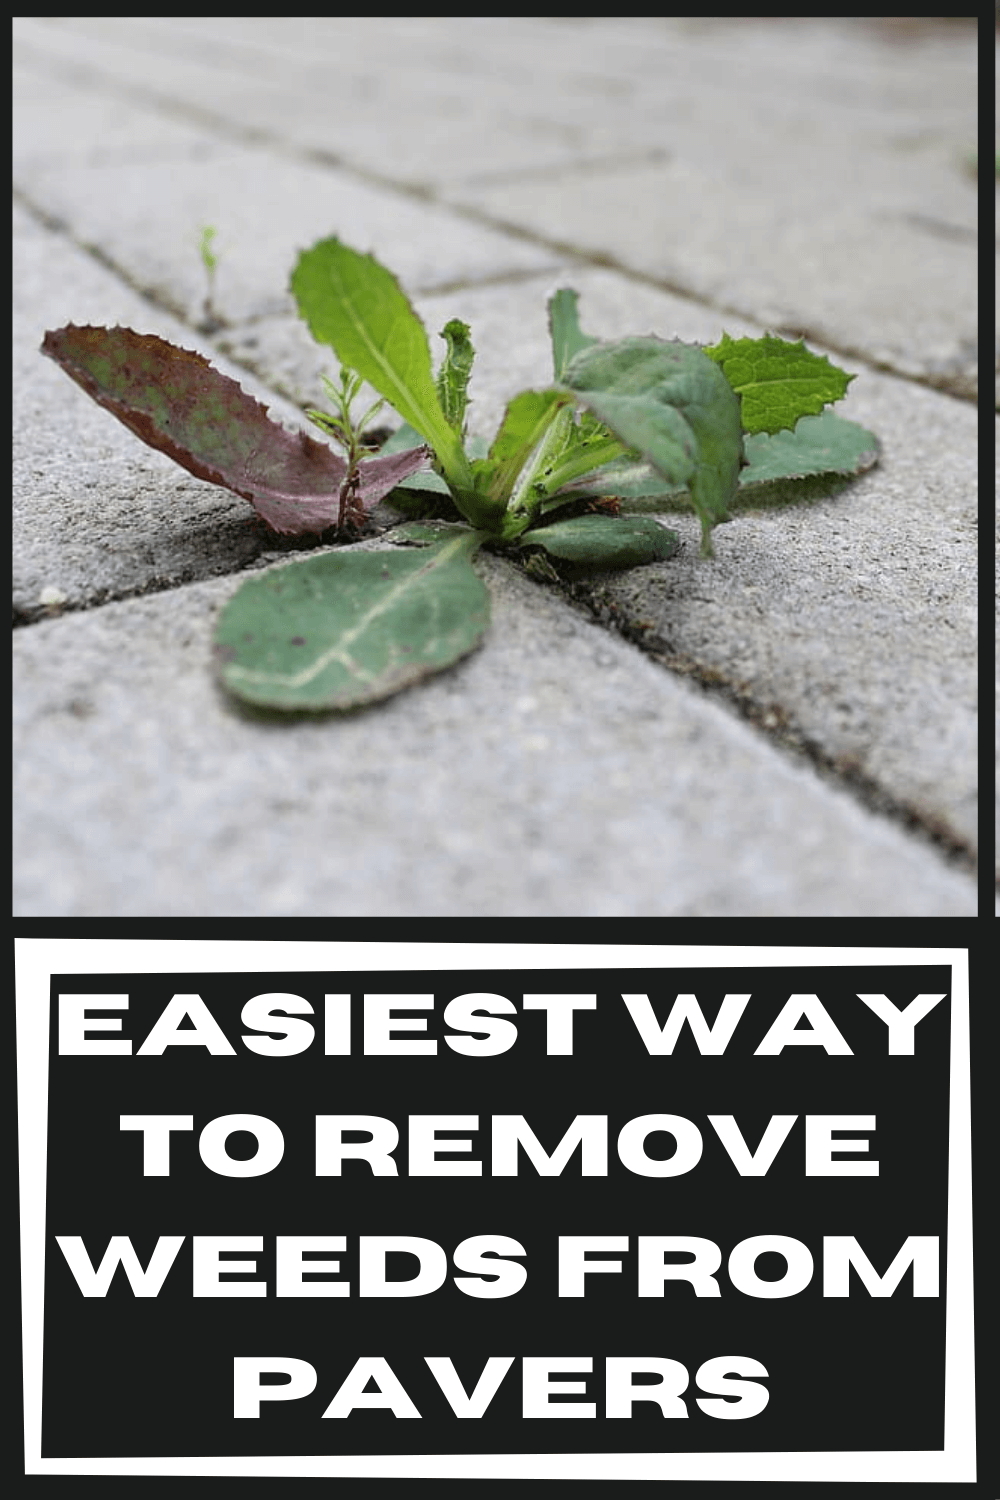 easiest-way-to-remove-weeds-from-pavers